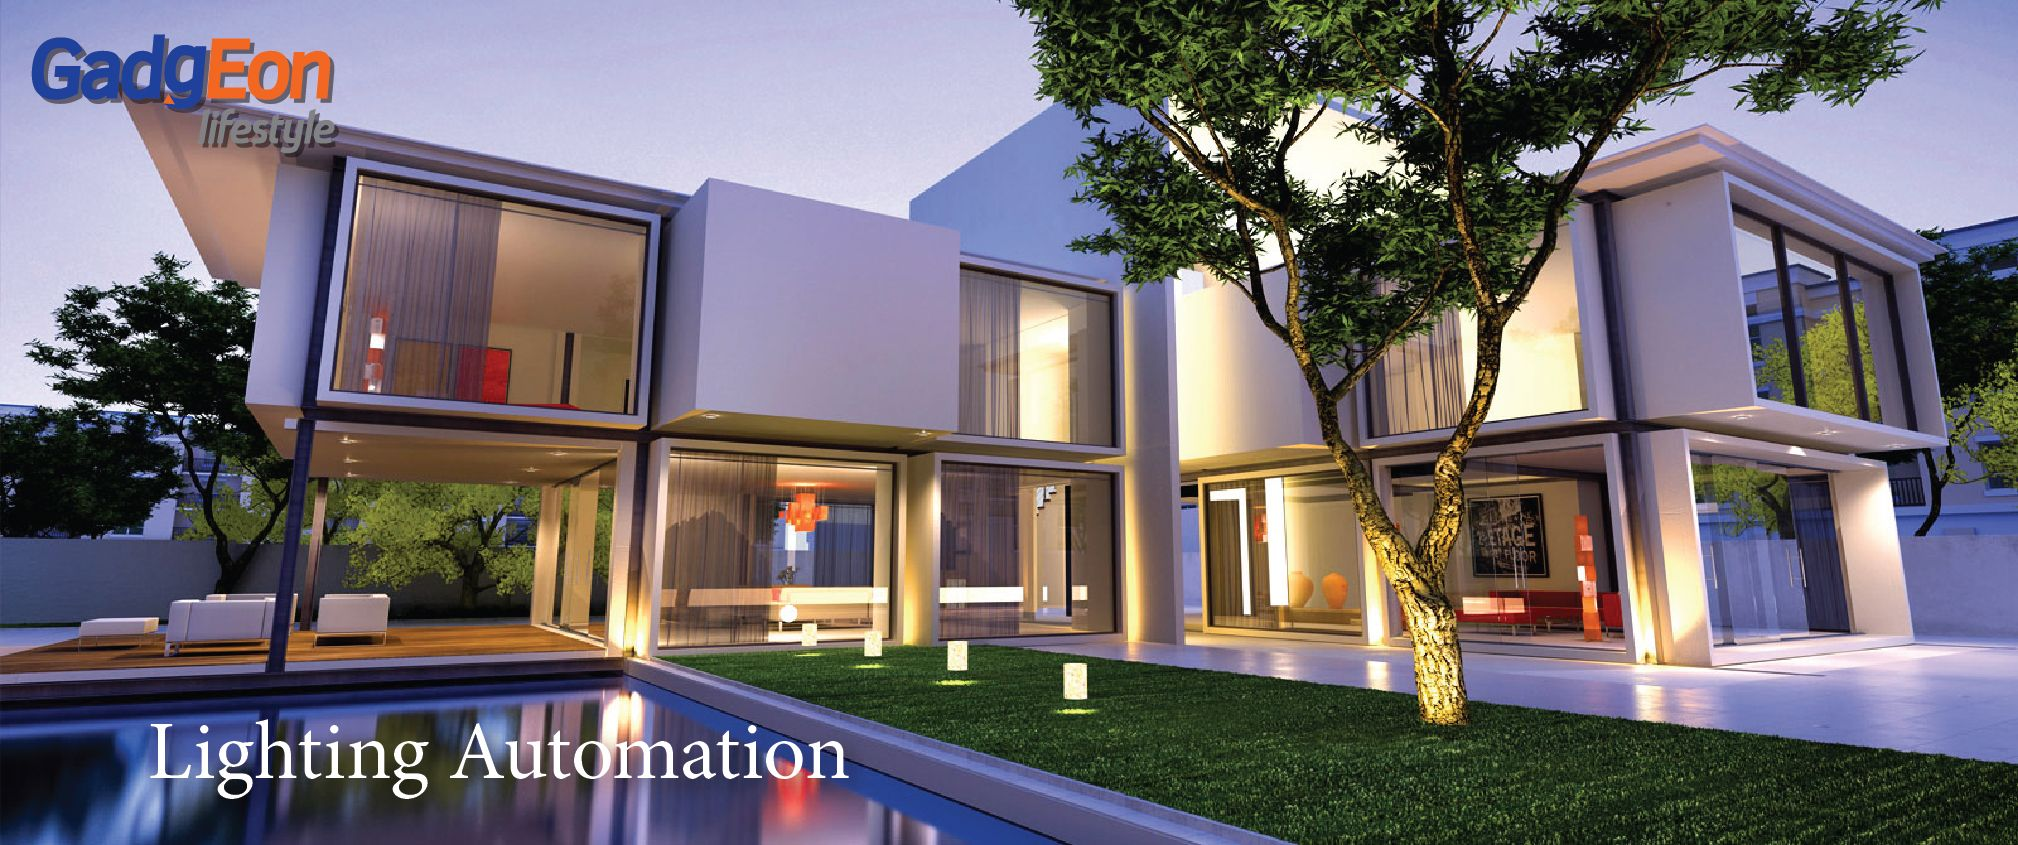 Home Automation Services Provides You Access To Control